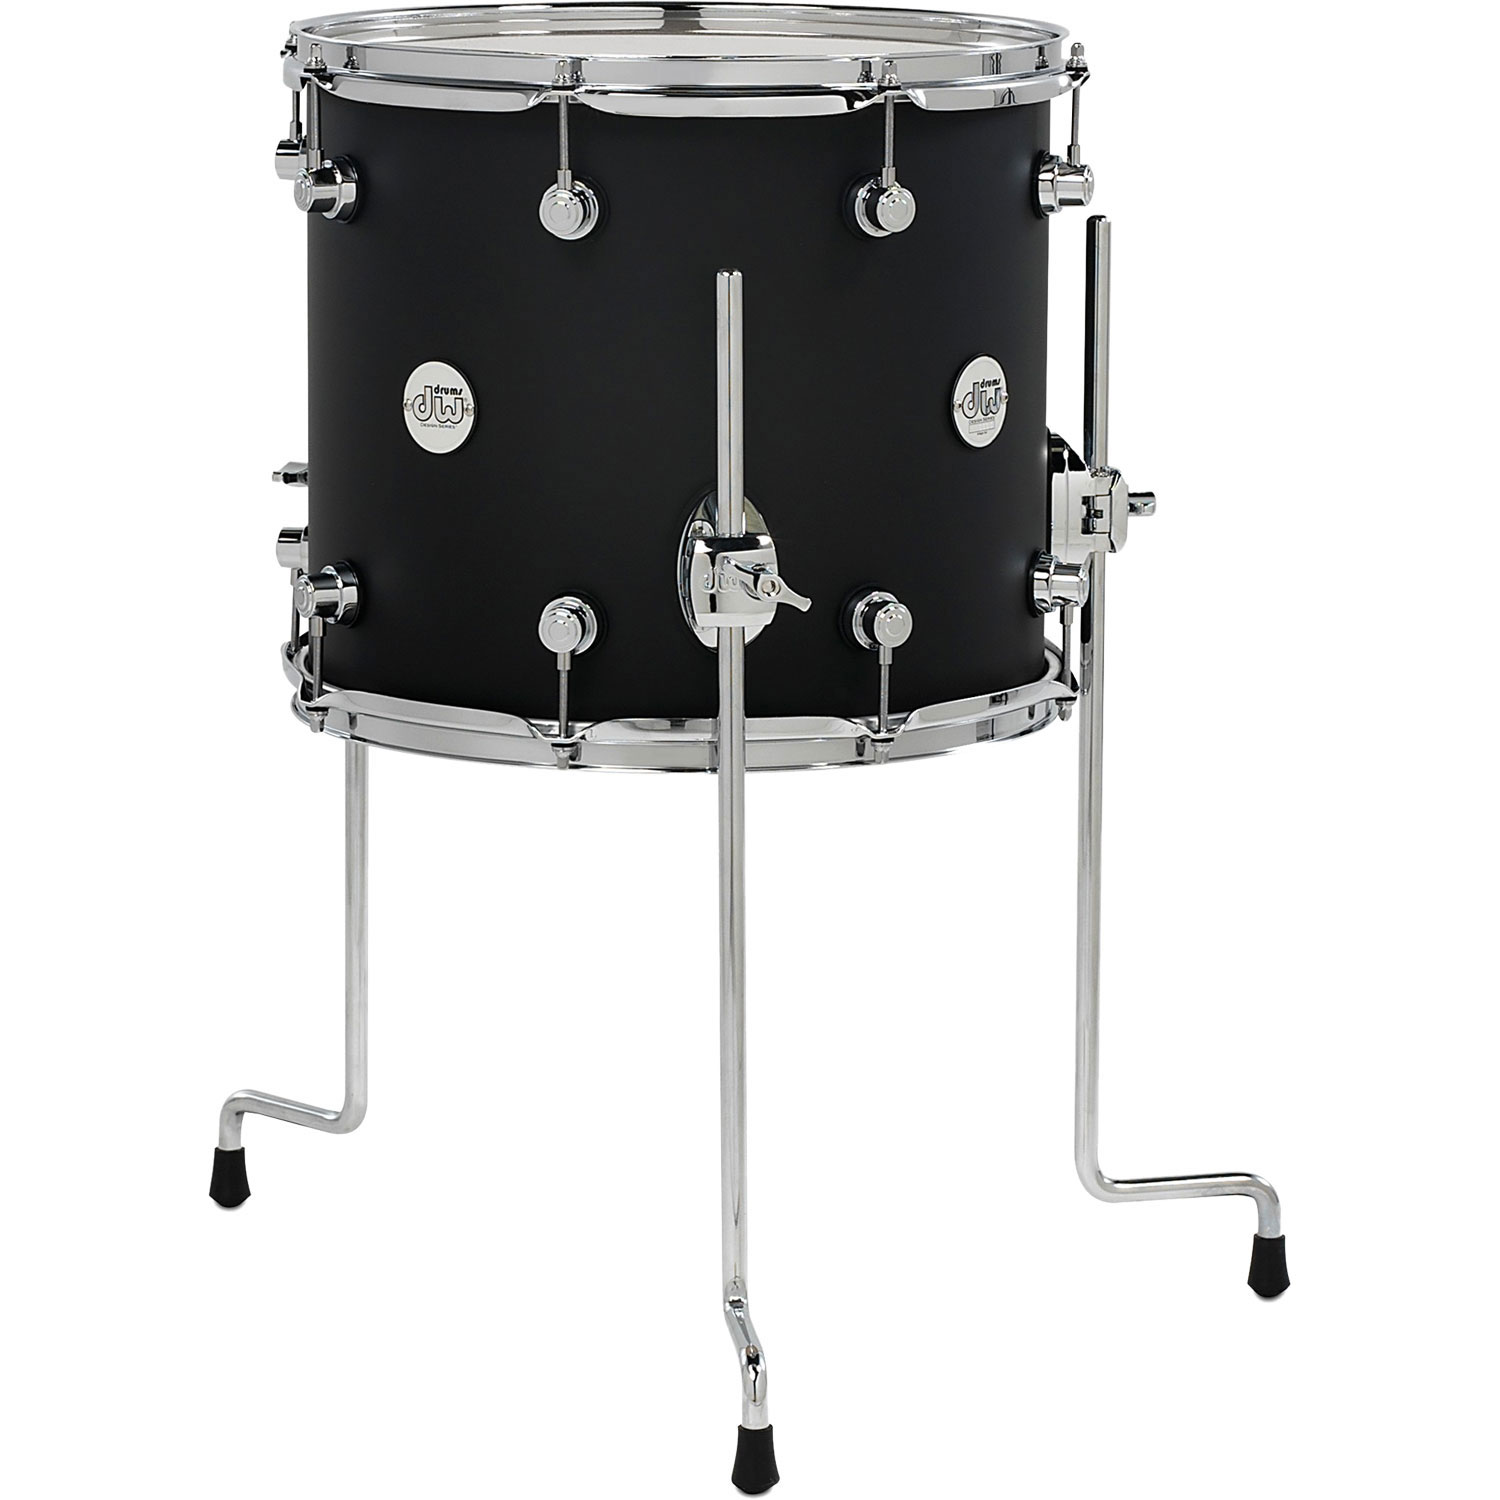 "DW 16"" (Deep) x 18"" (Diameter) Design Series Floor Tom"